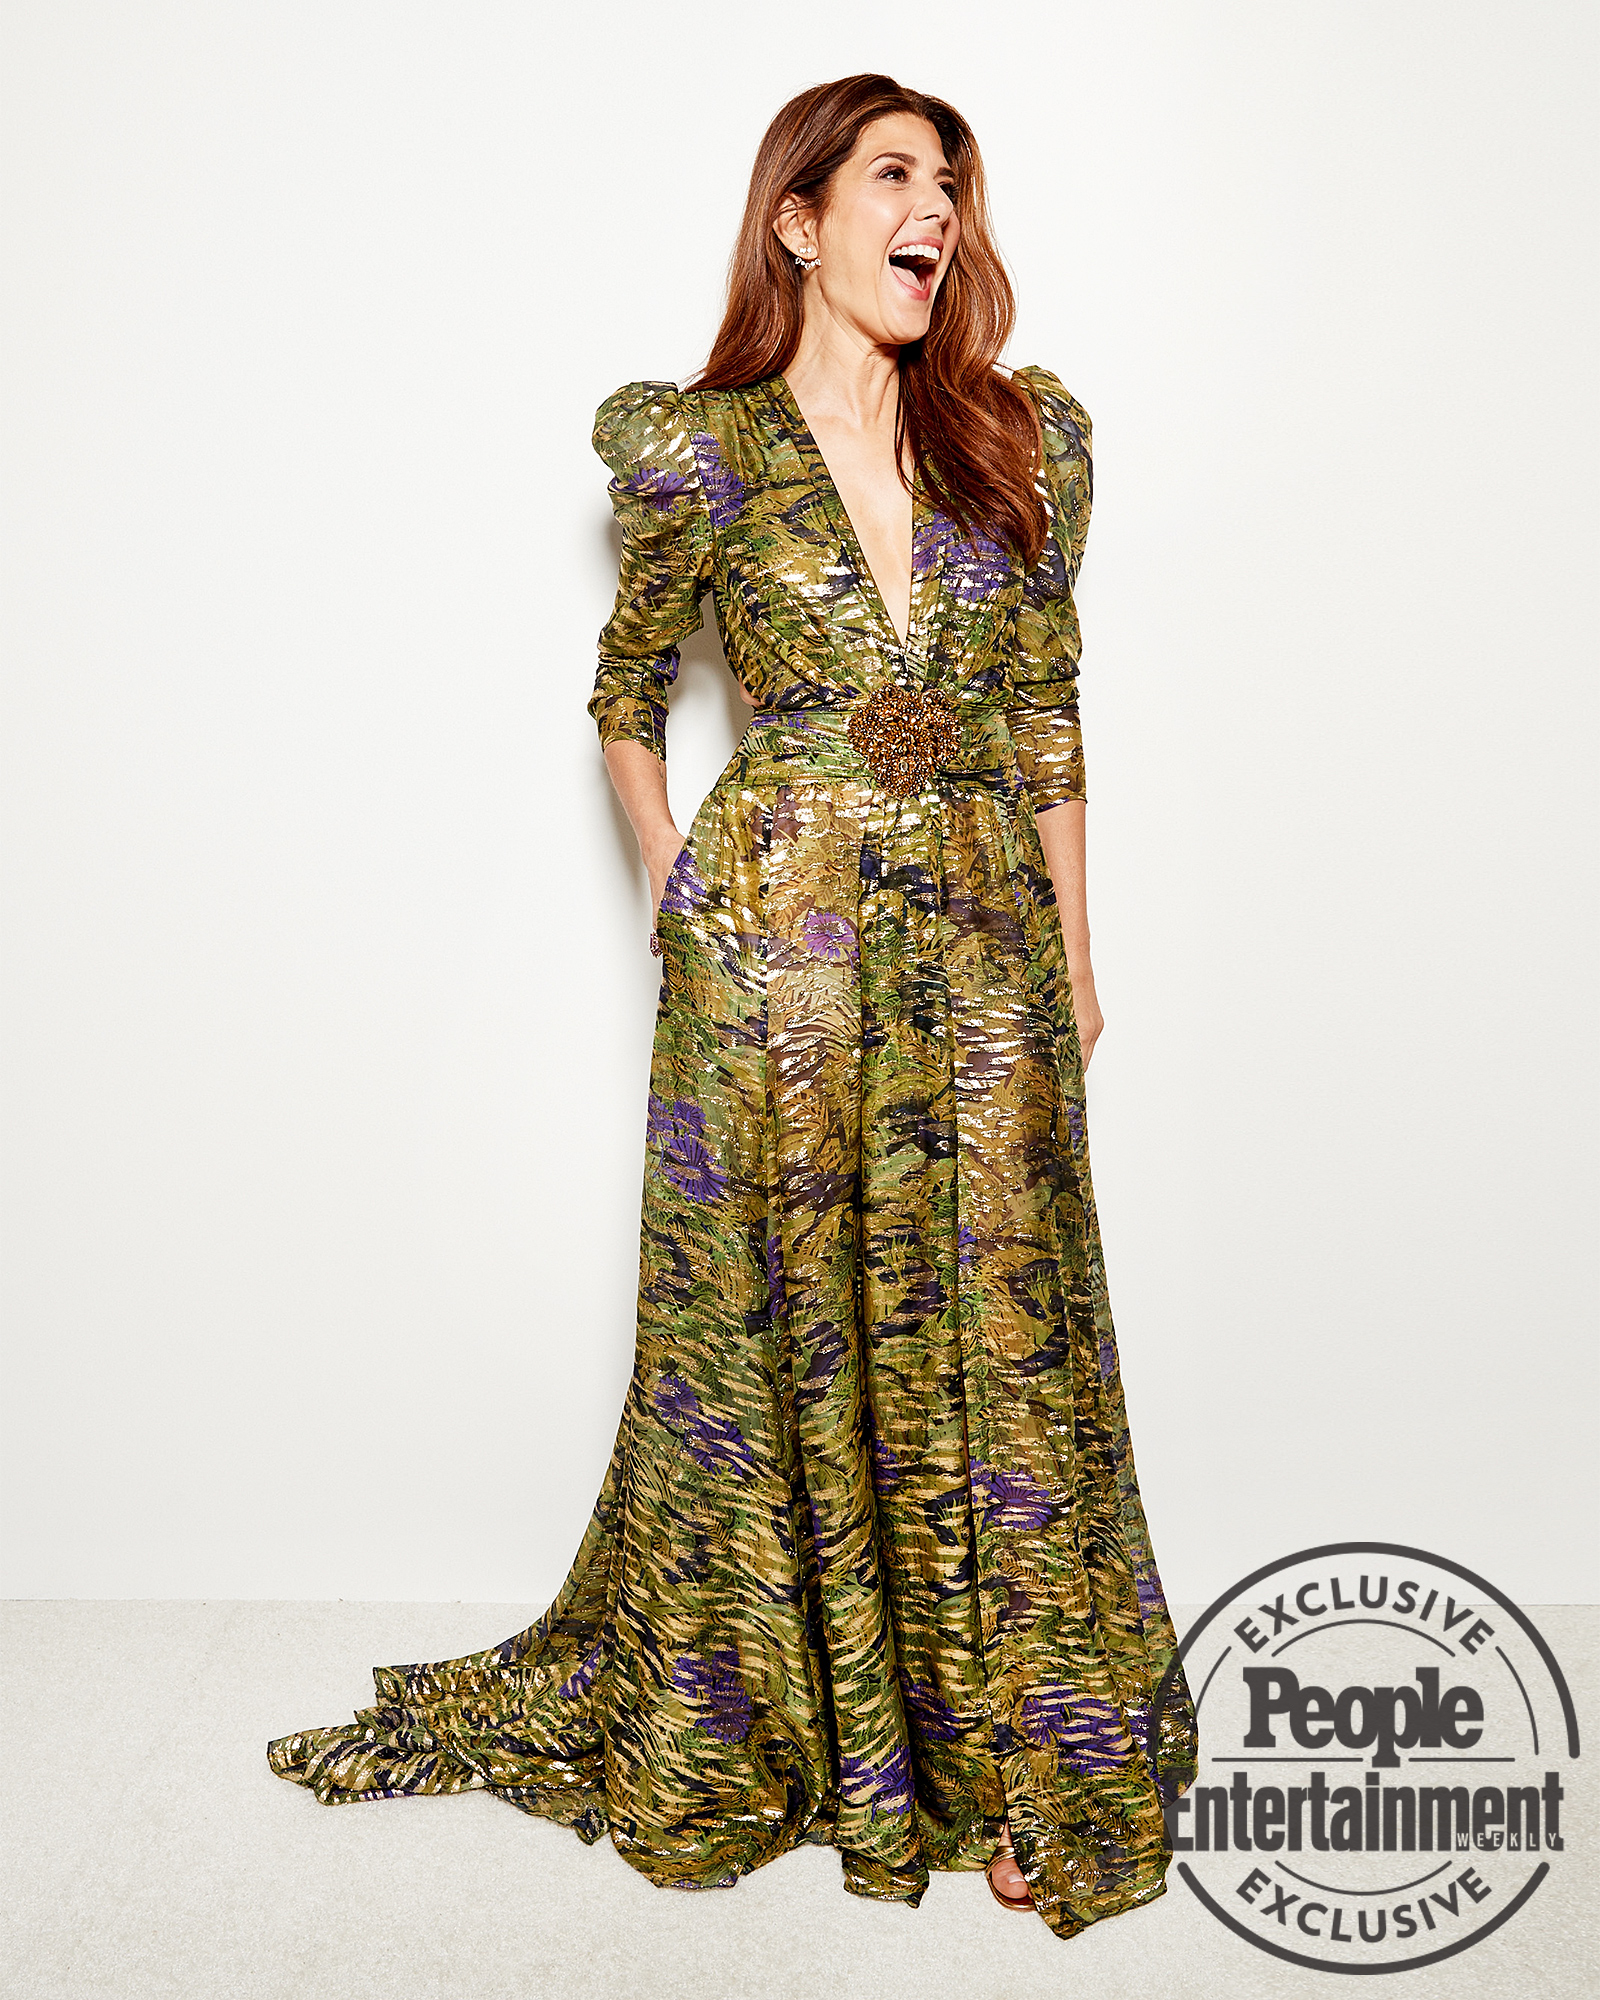 21st Costume Designers Guild Awards x Getty Images Portrait Studio presented by LG V40 ThinQ